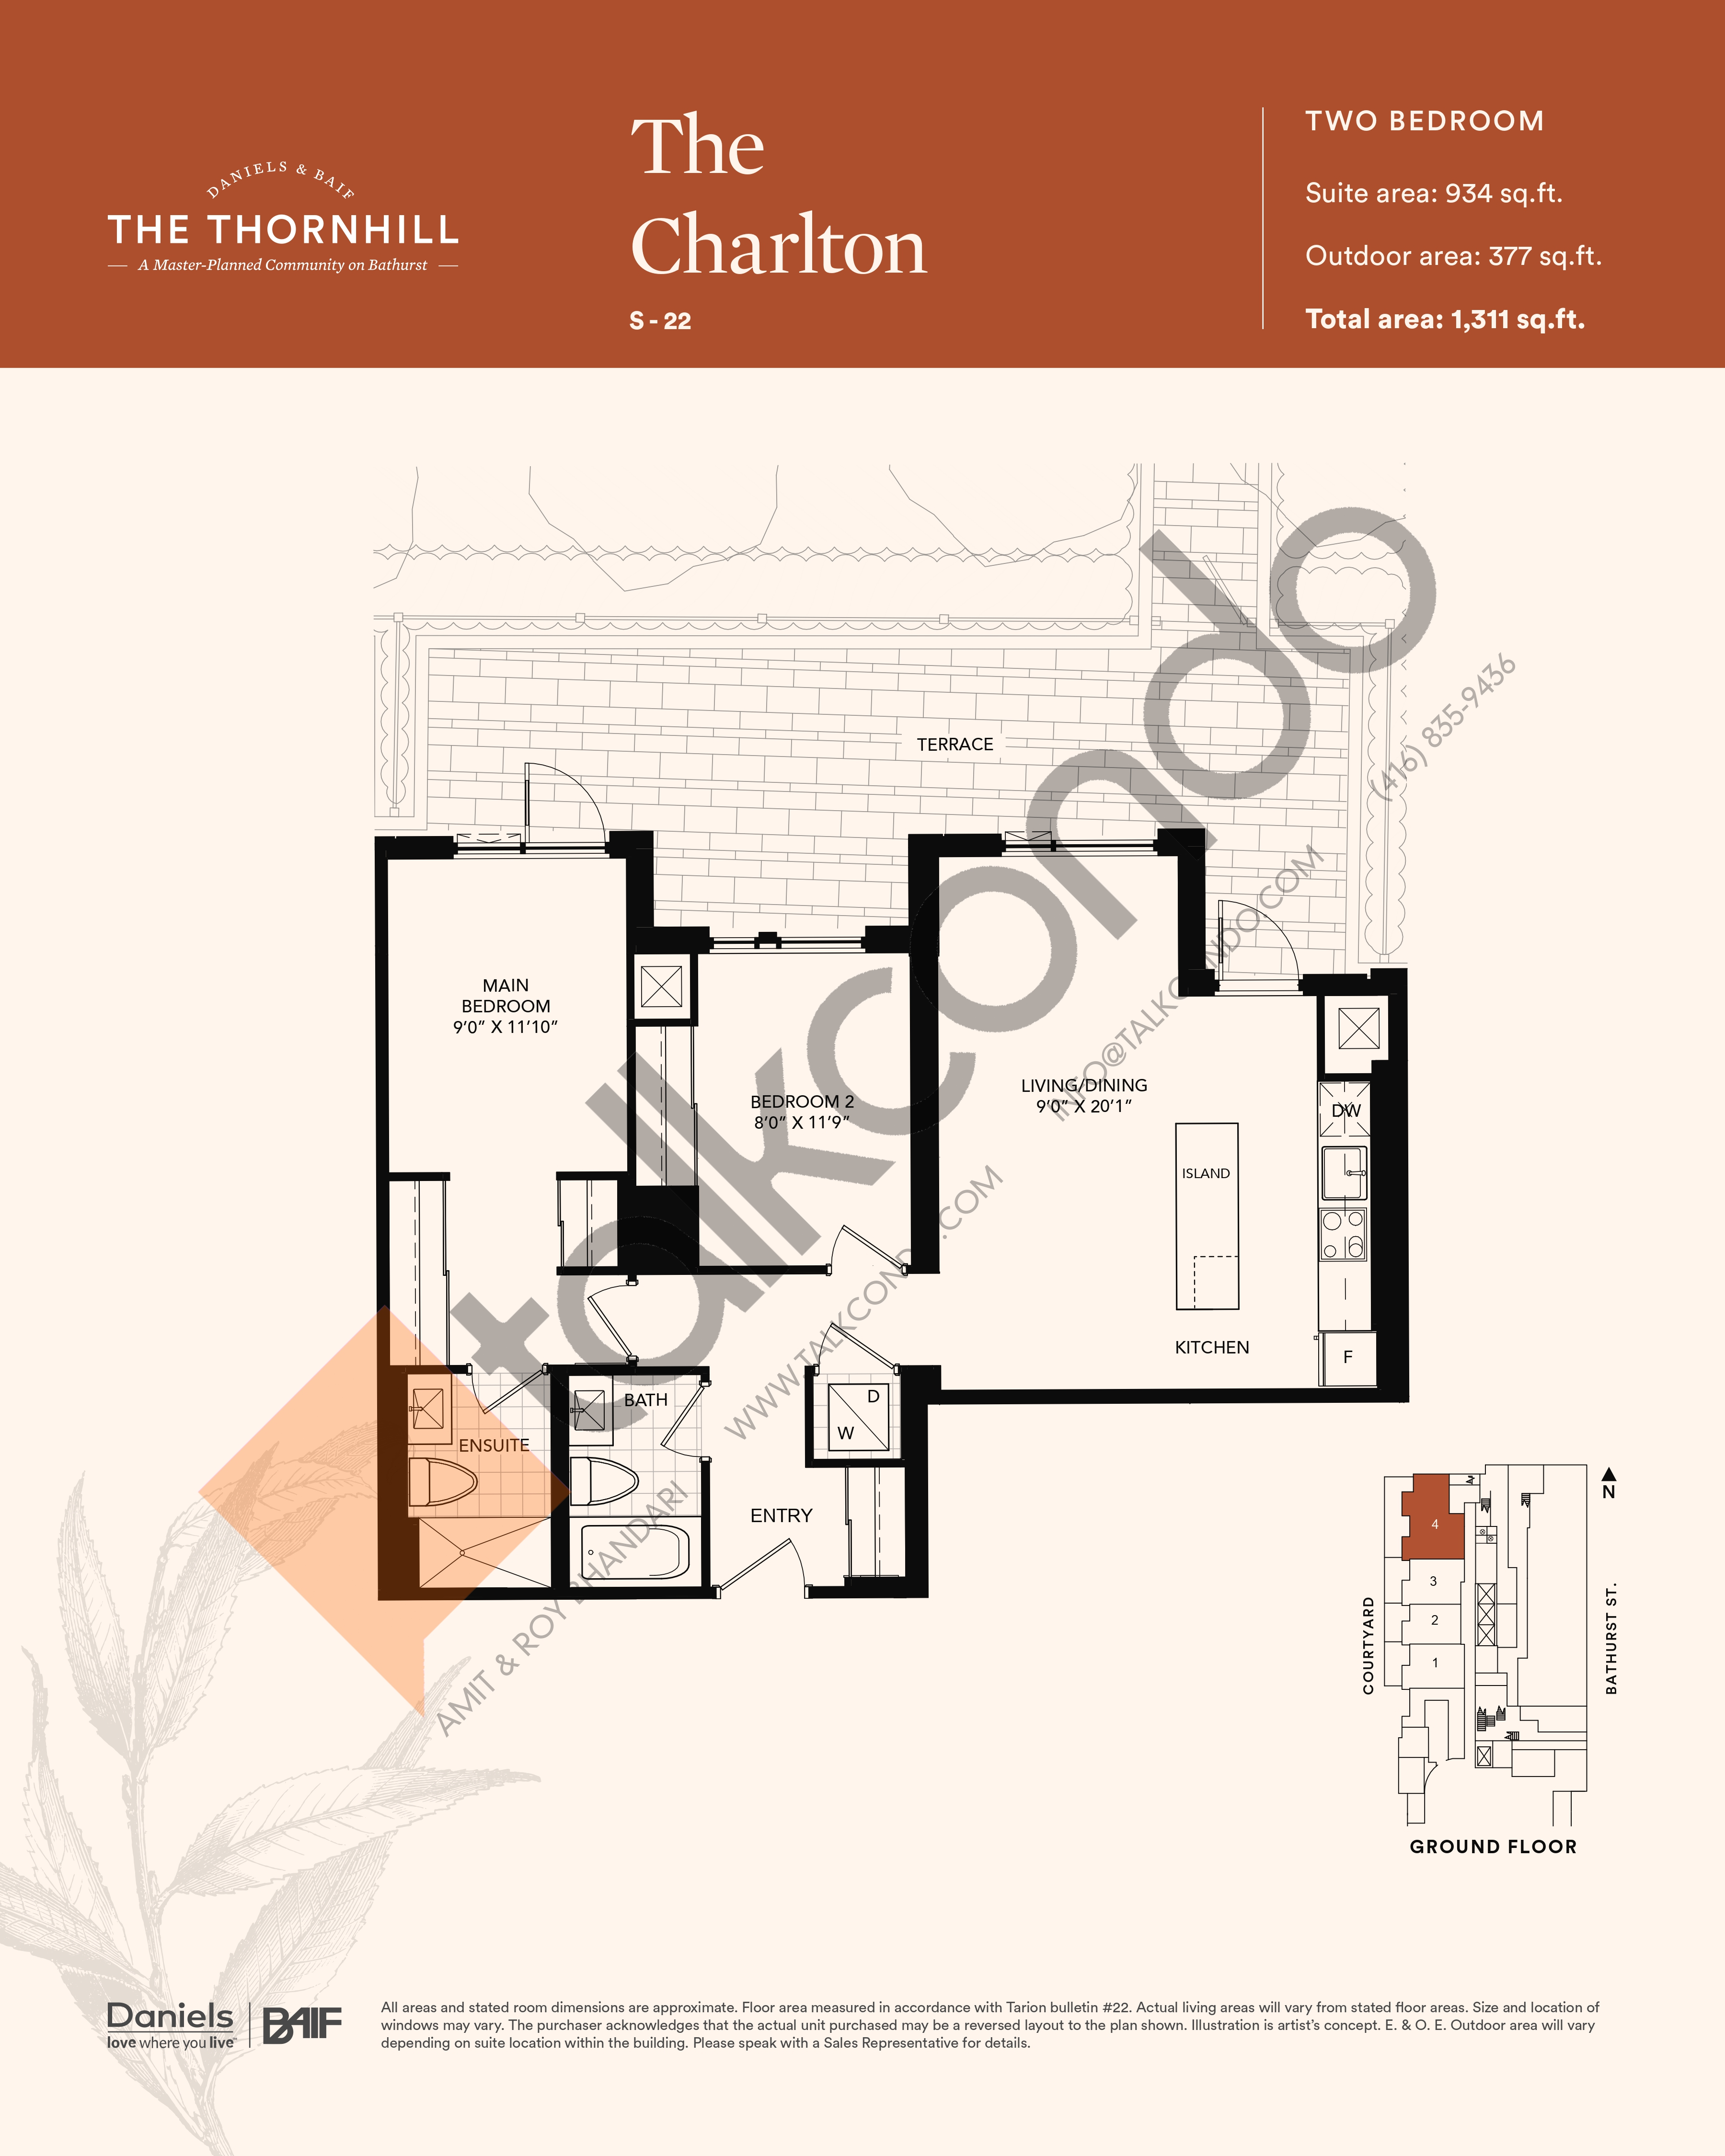 The Charlton Floor Plan at The Thornhill Condos - 934 sq.ft